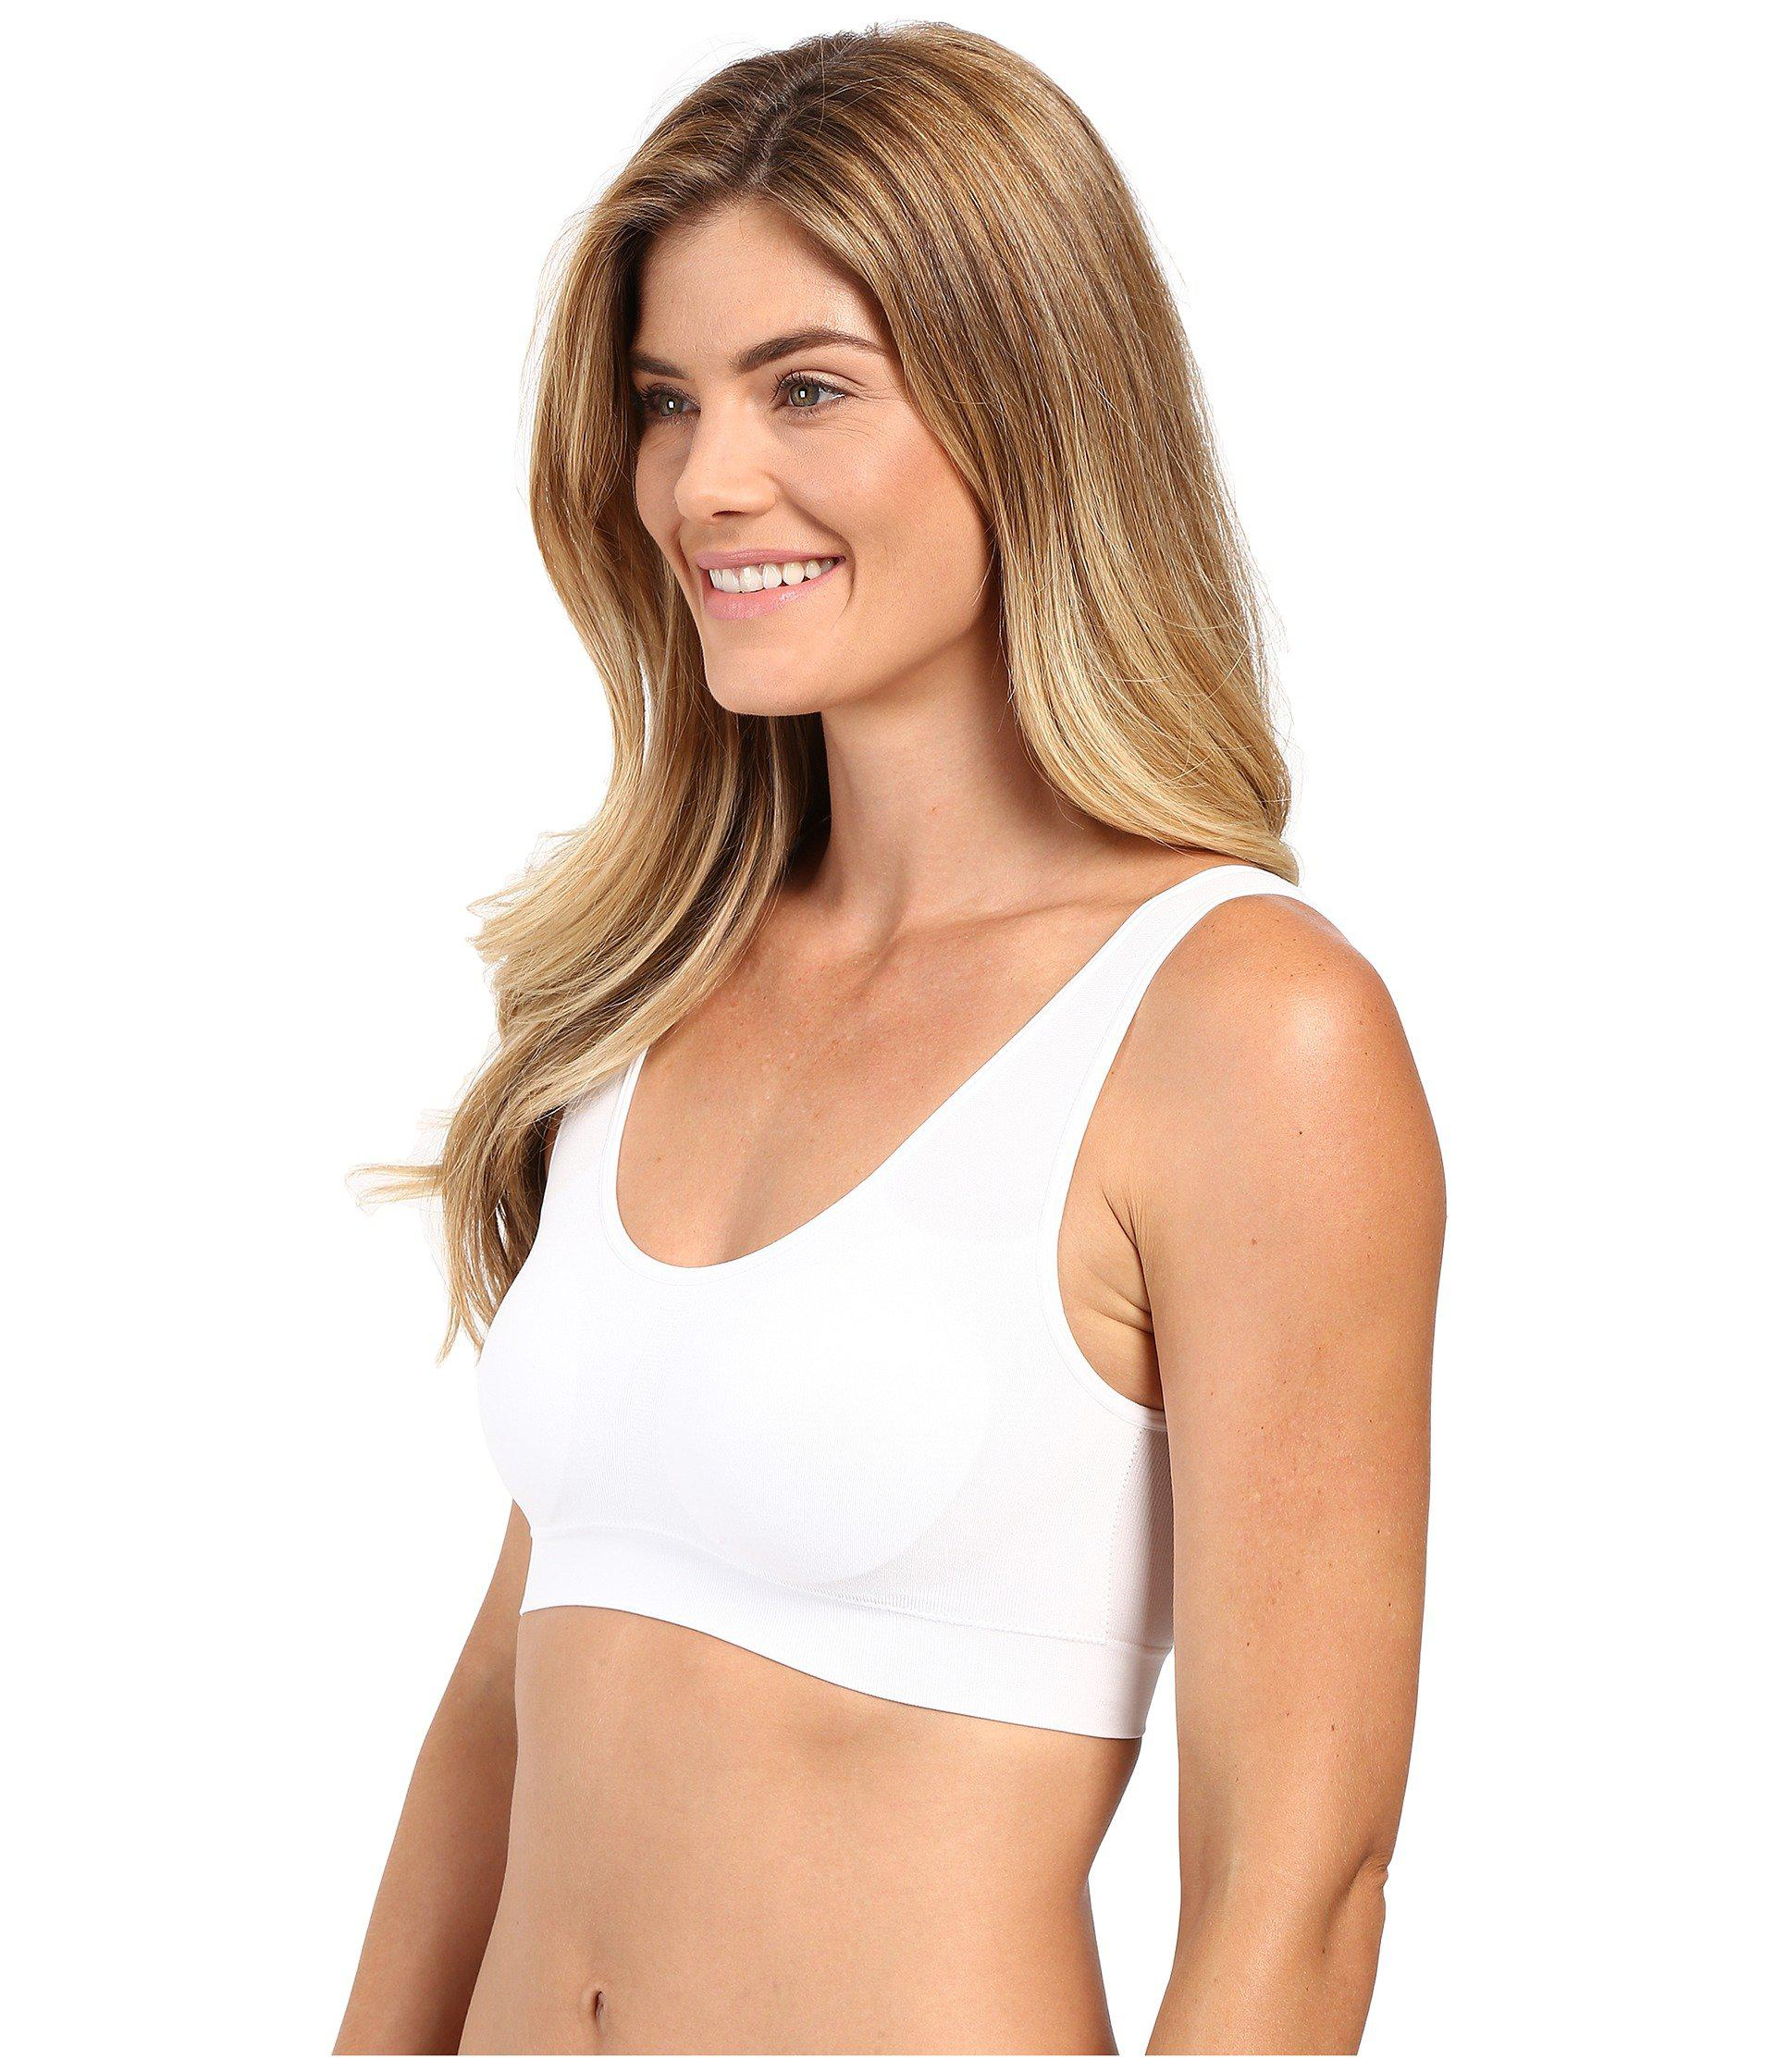 450141146a7cc Jockey - Modern Micro Seamfree(r) Ballet Crop Top (white) Women s  Underwear. View fullscreen